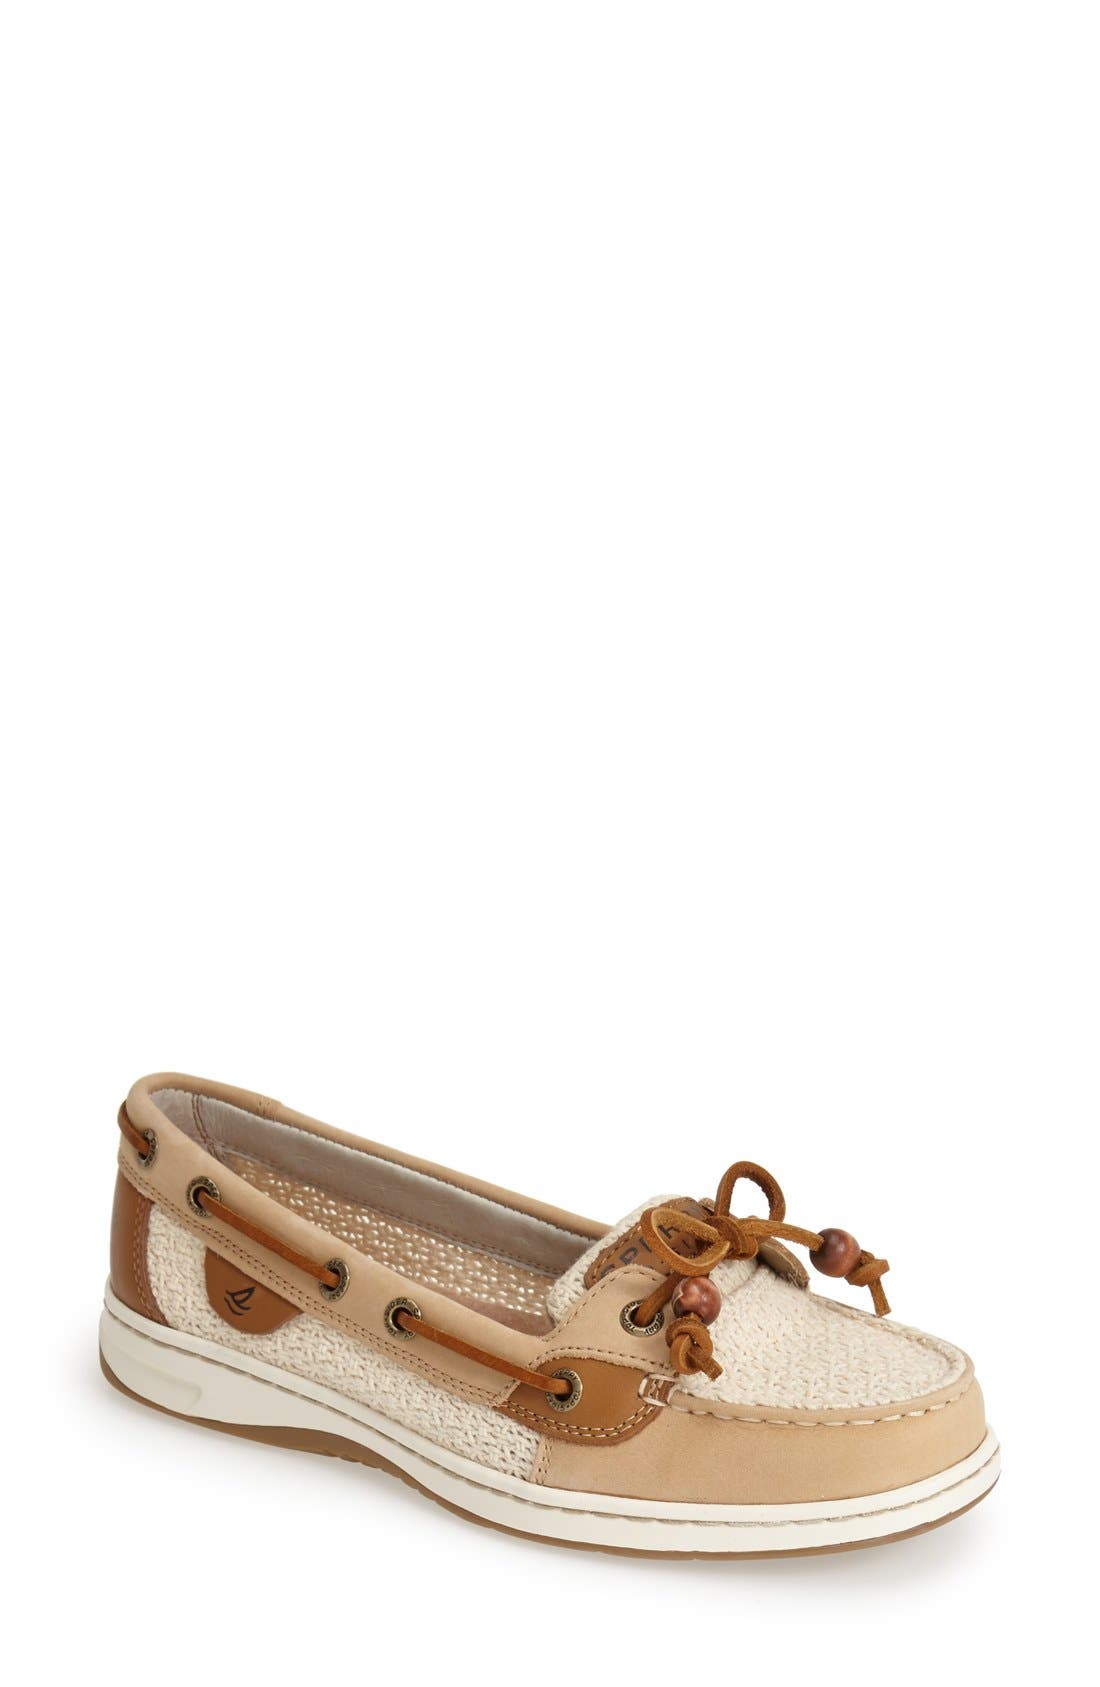 Main Image - Sperry 'Angelfish' Boat Shoe (Women)